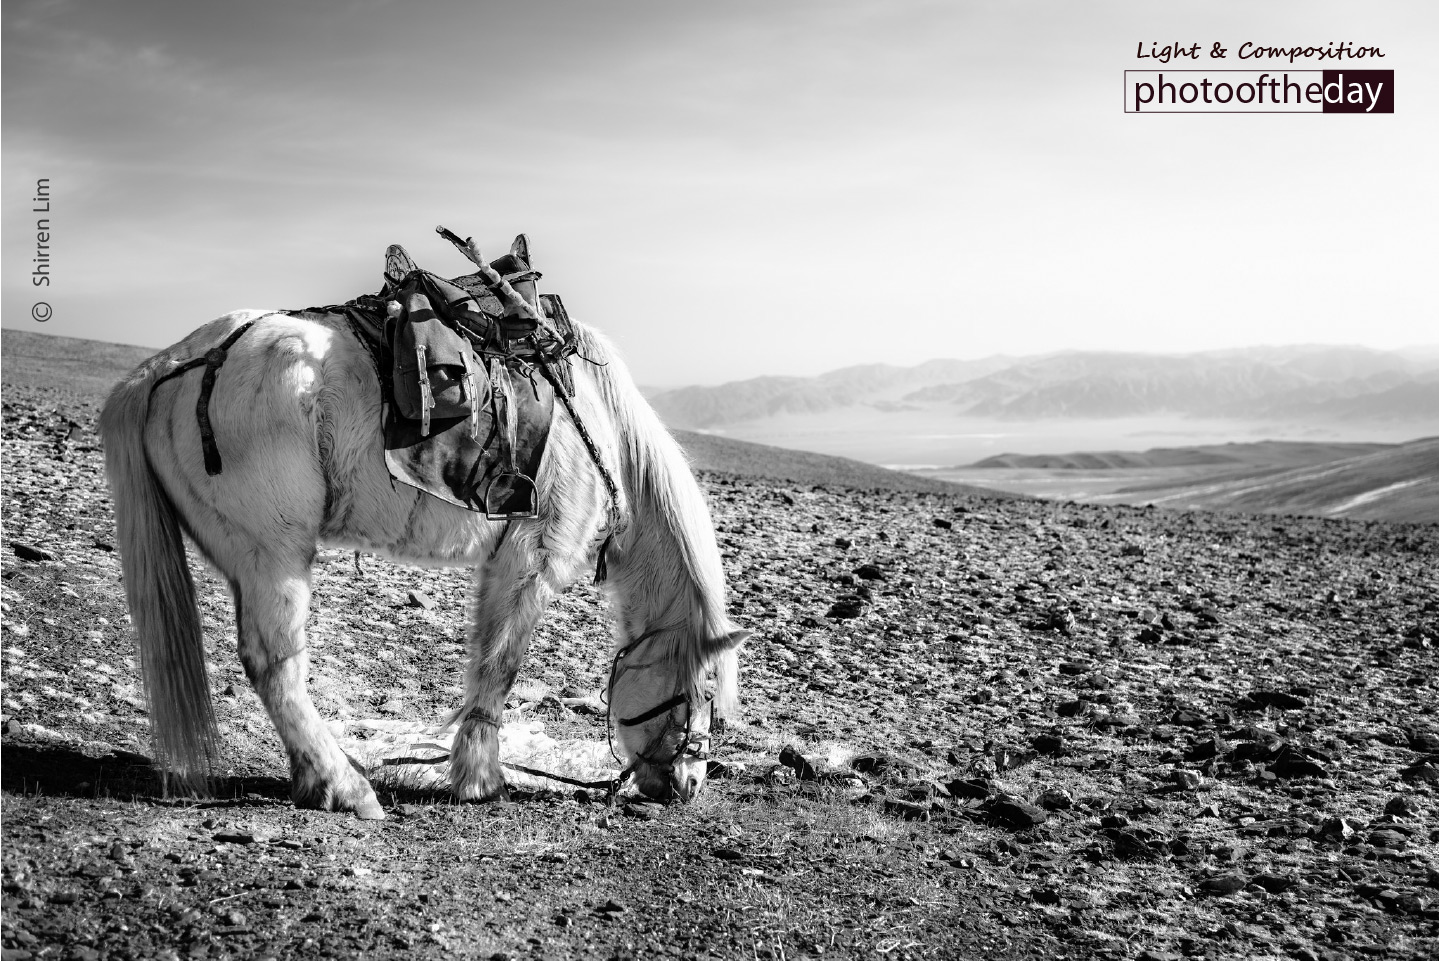 A Horse Grazes on the Mountain, by Shirren Lim